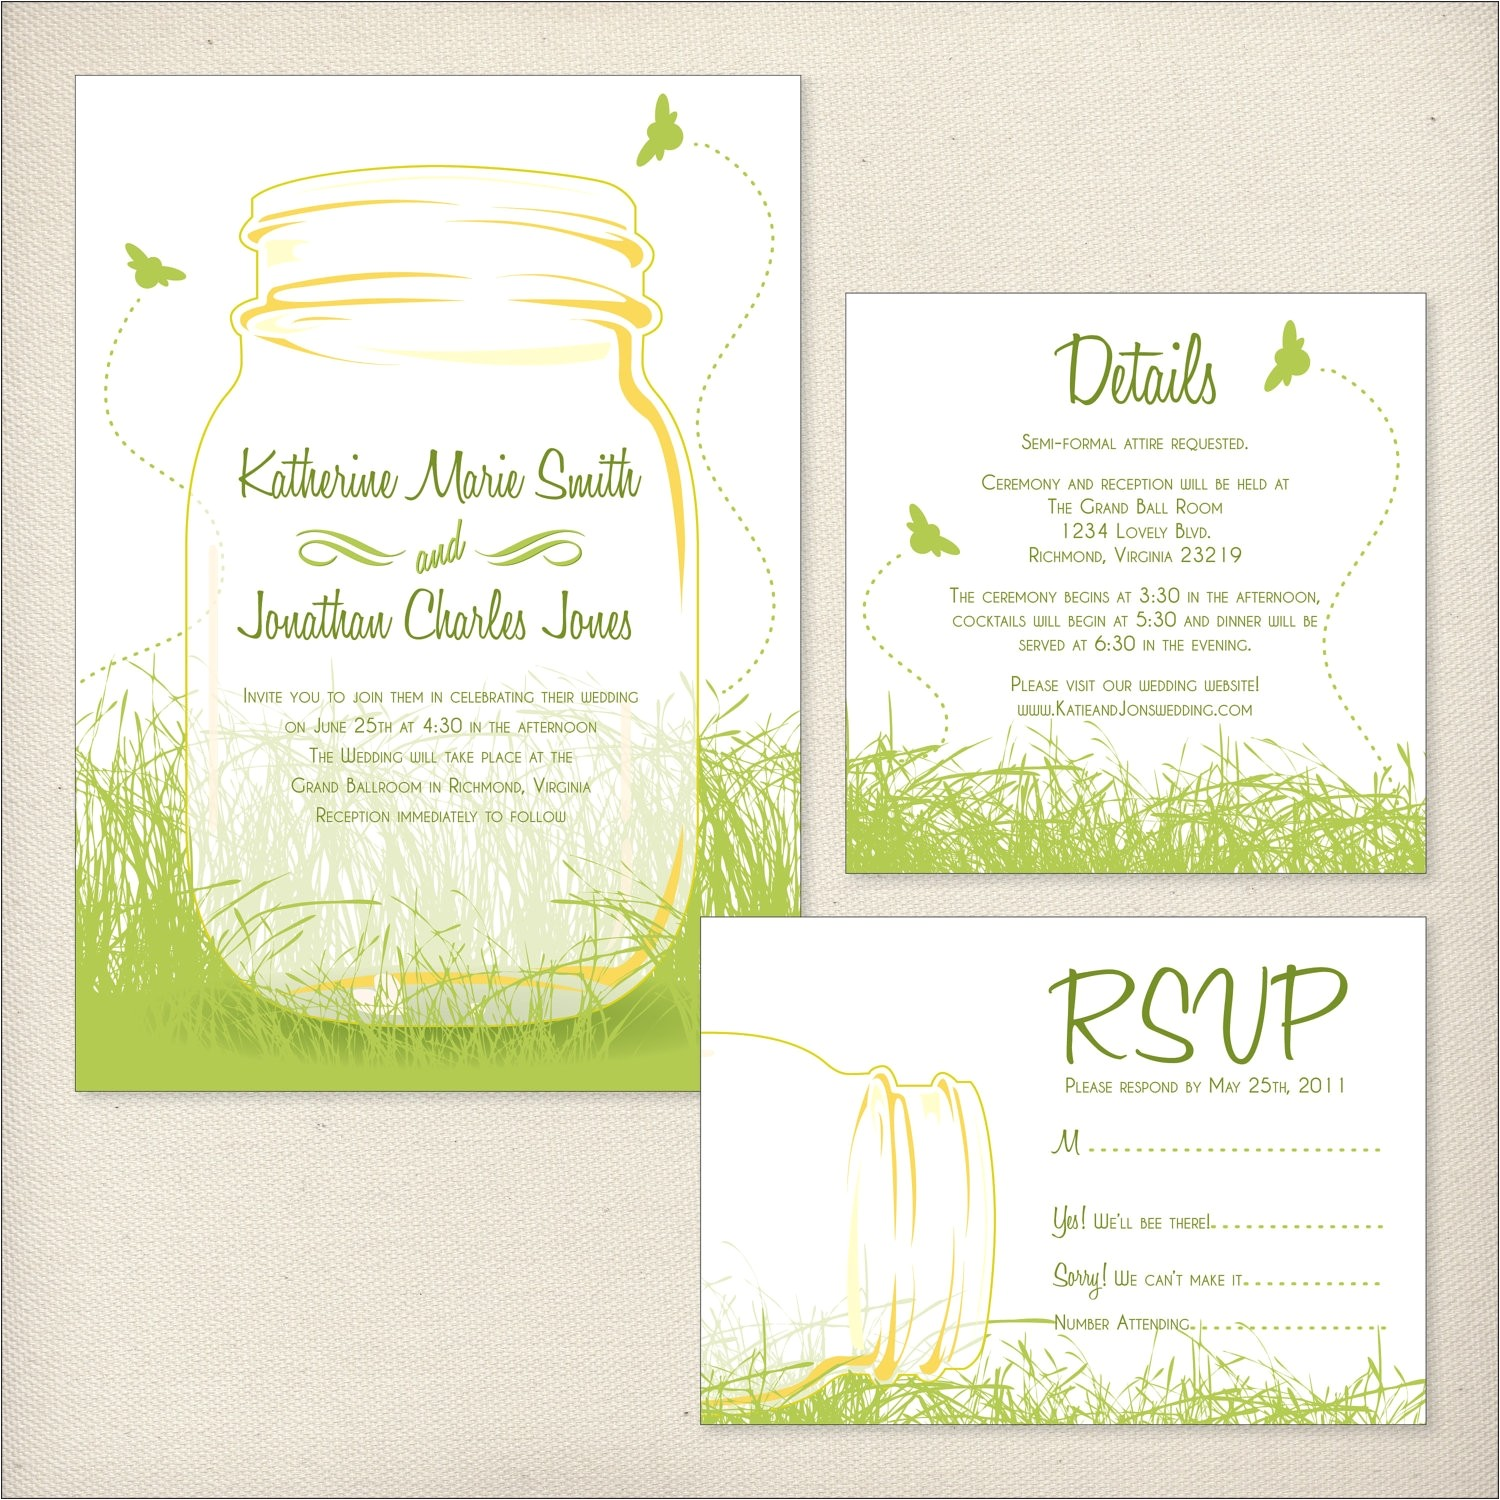 how to make wedding invitations costco ideas with smart design of wedding invitations with rsvp cards included invitation card silverlininginvitations